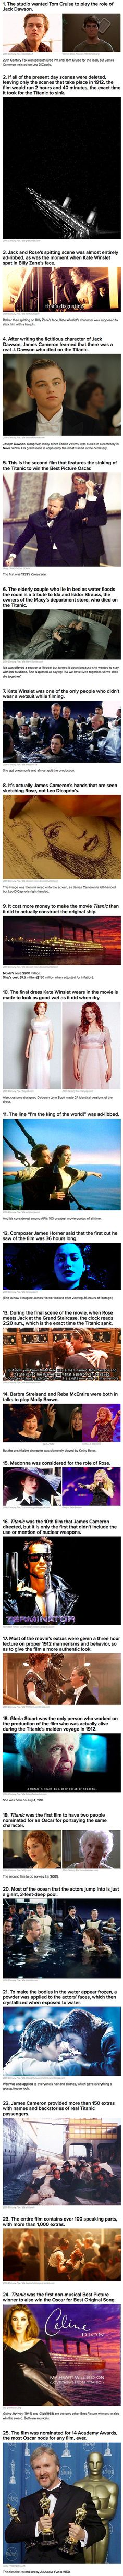 We have rounded up some fun and interesting things that you may not have known about the Titanic movie.